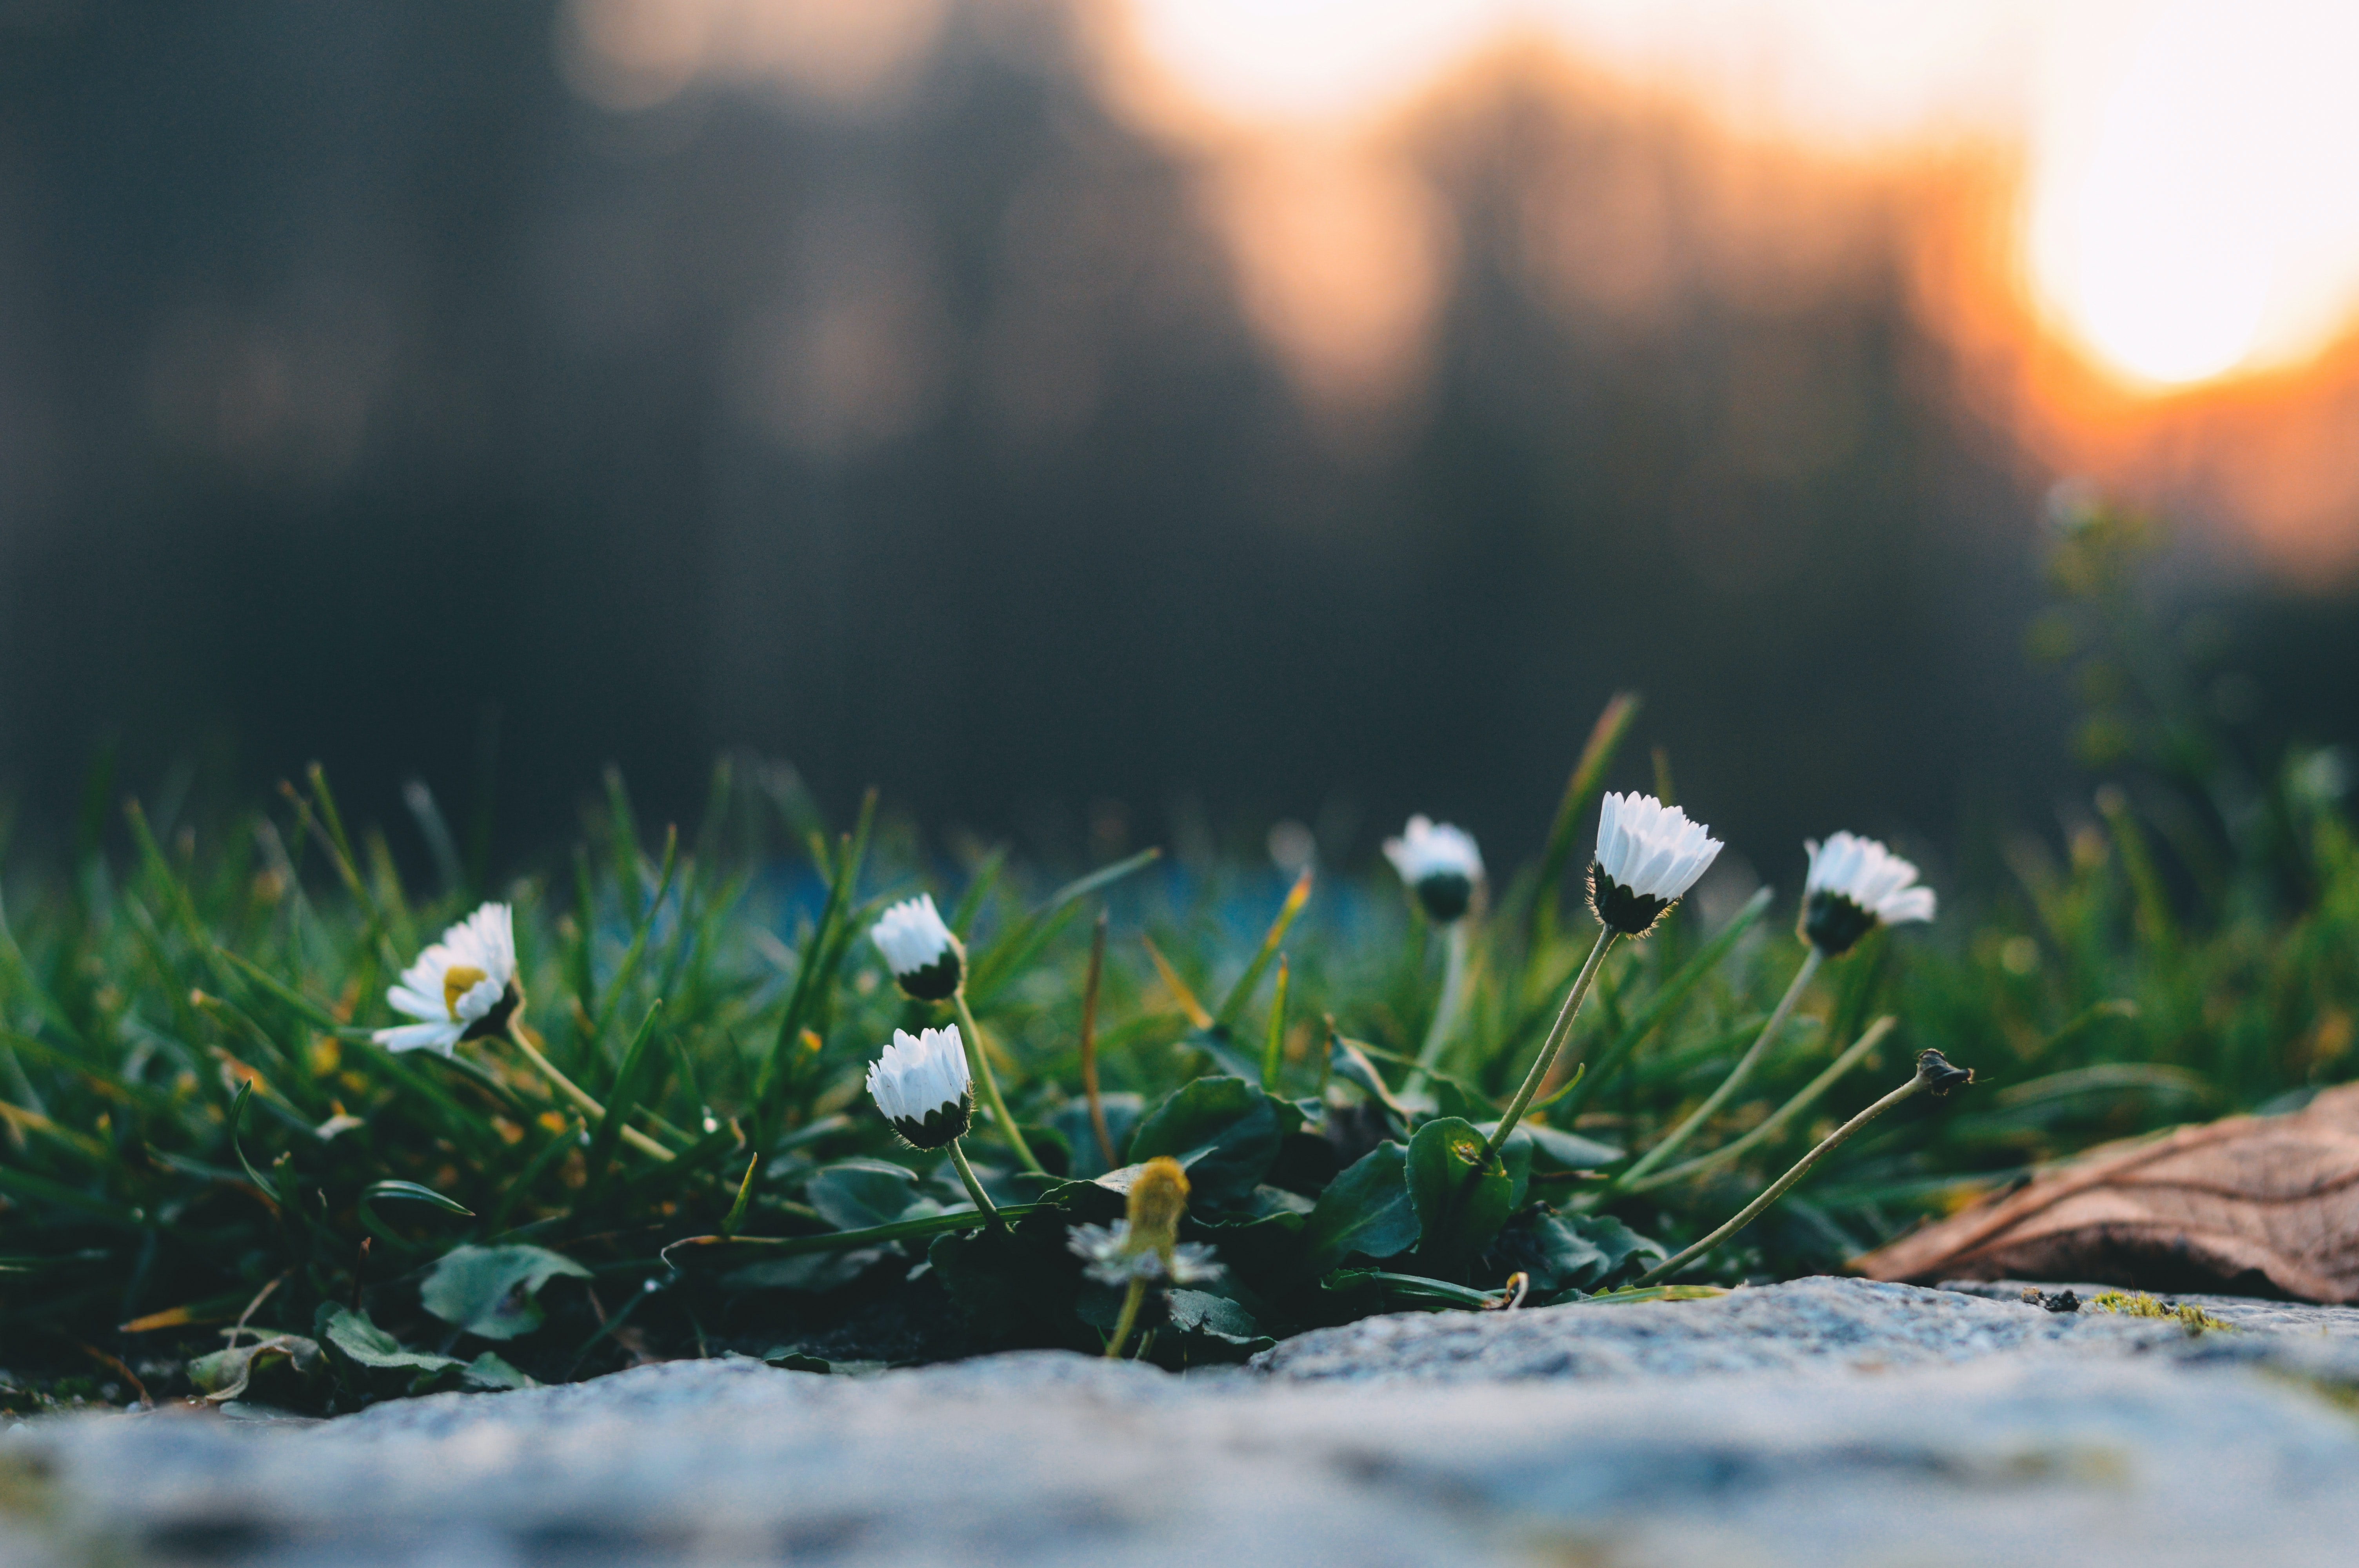 Close-up of white daisies bending towards the ground during sunset